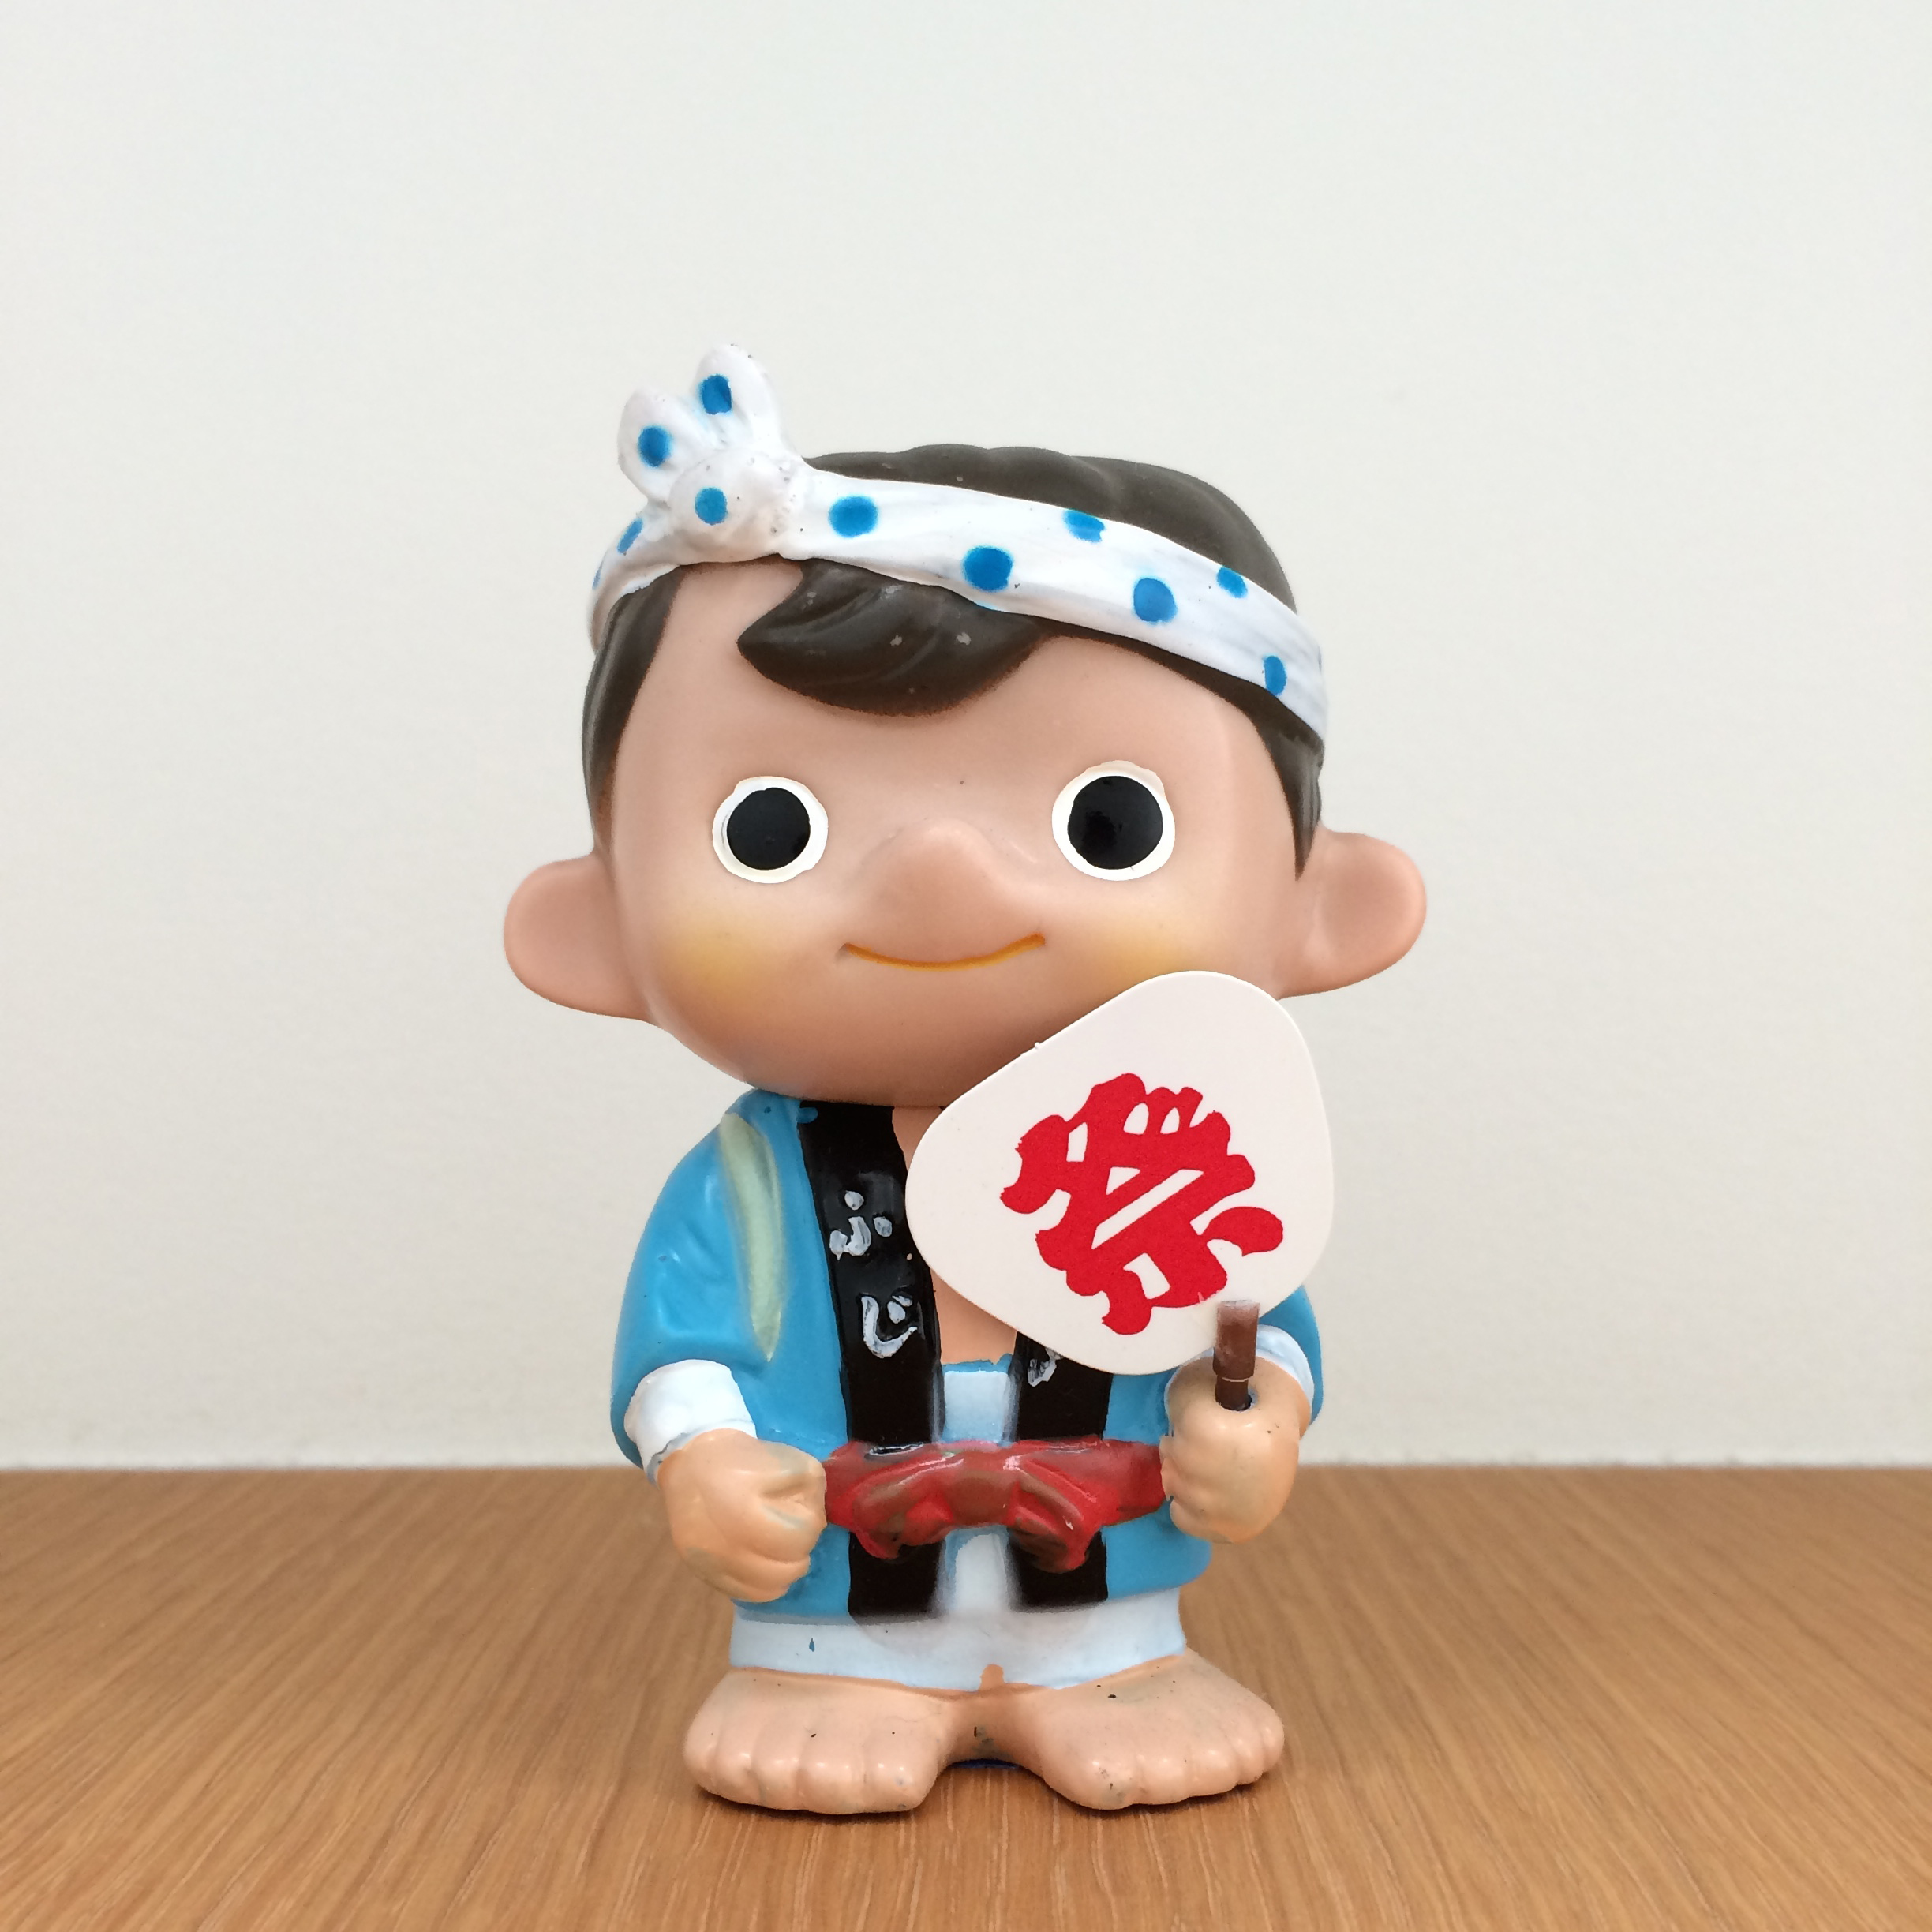 Retro Japanese Vinyl Toy Coin Banks            Gallery